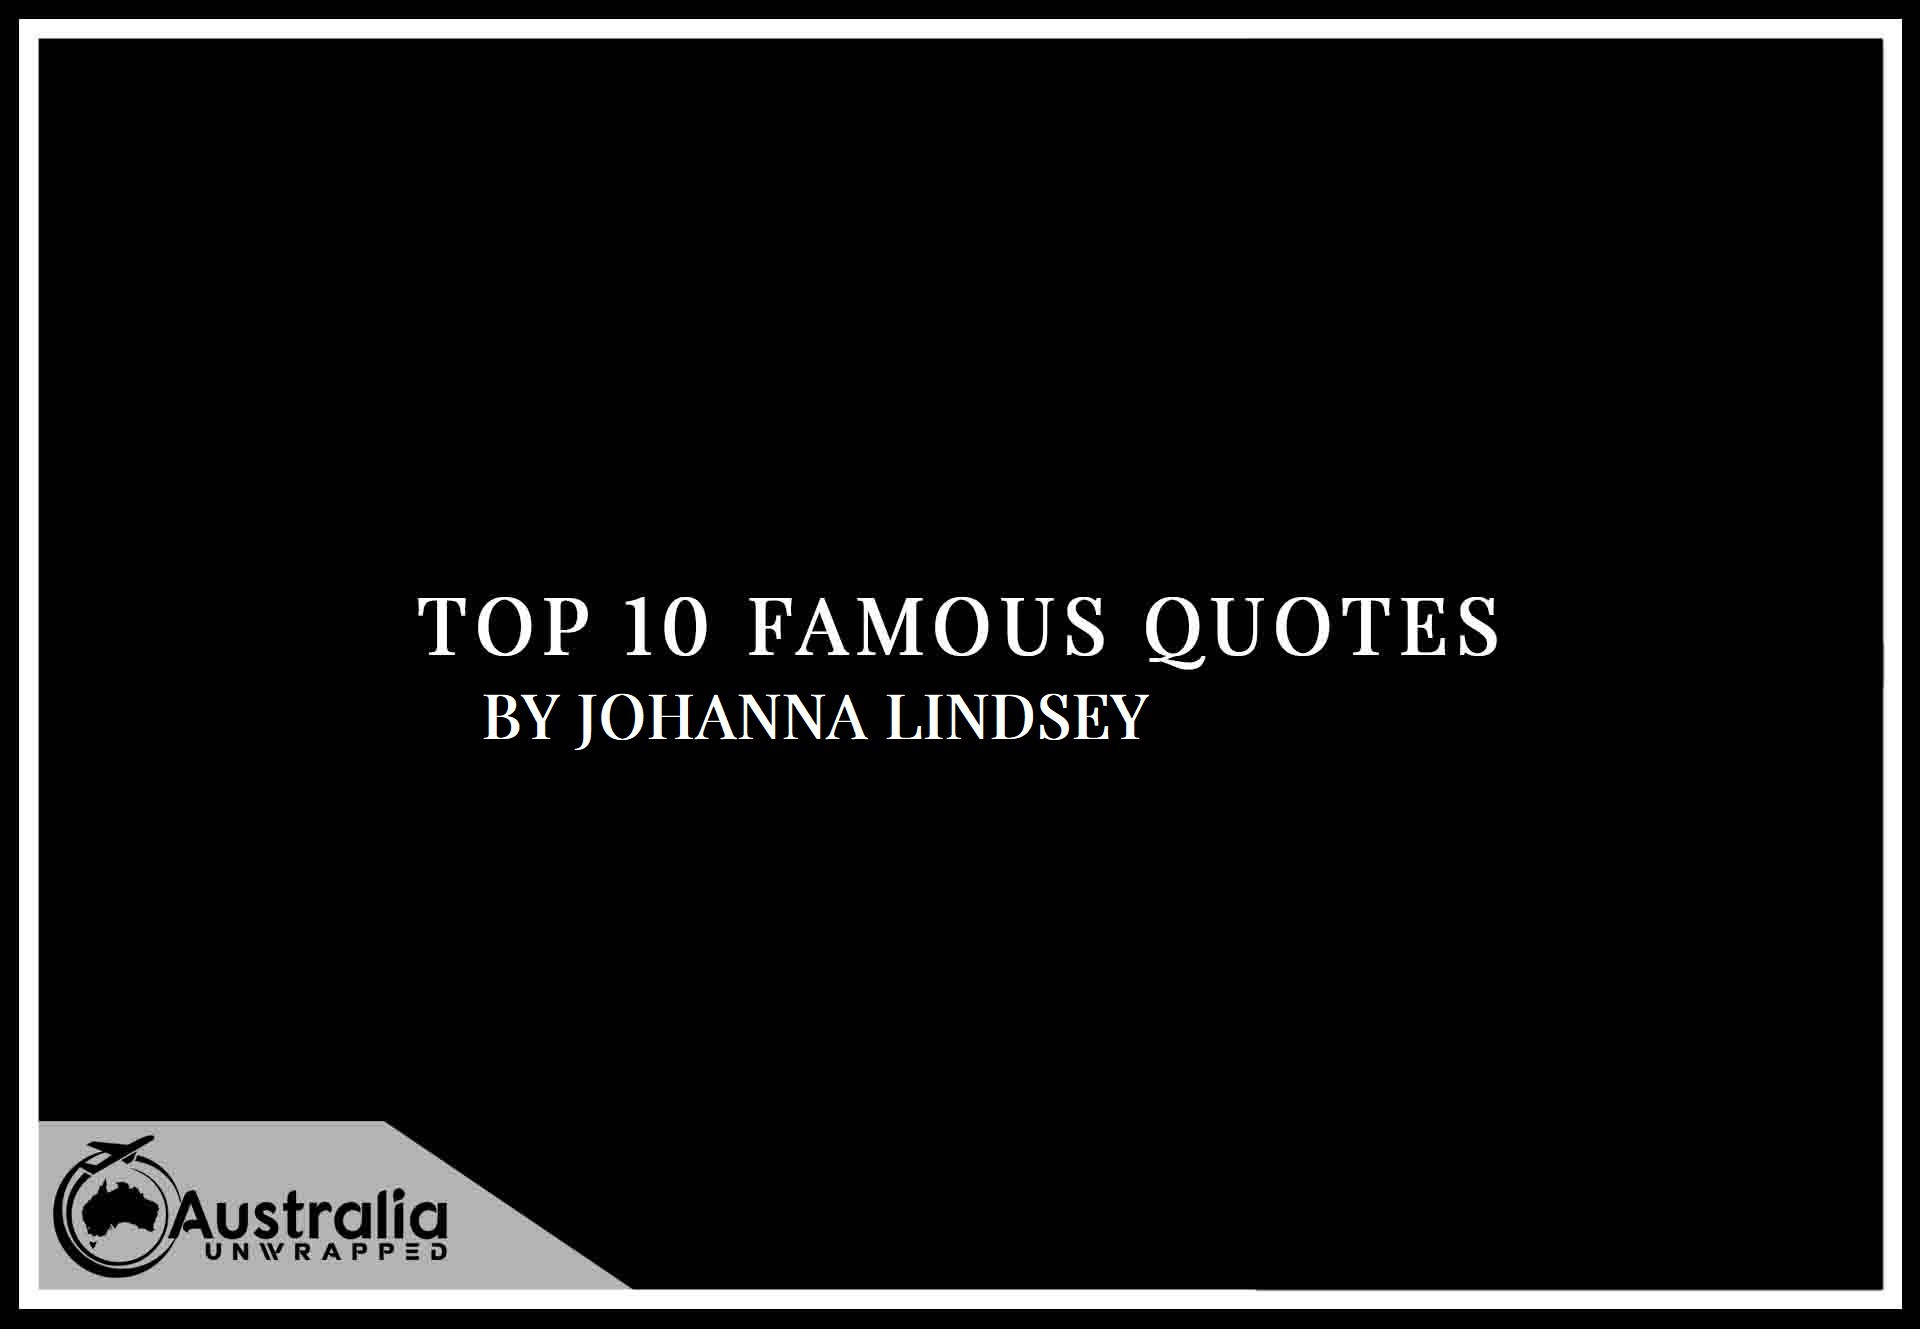 Top 10 Famous Quotes by Author Johanna Lindsey